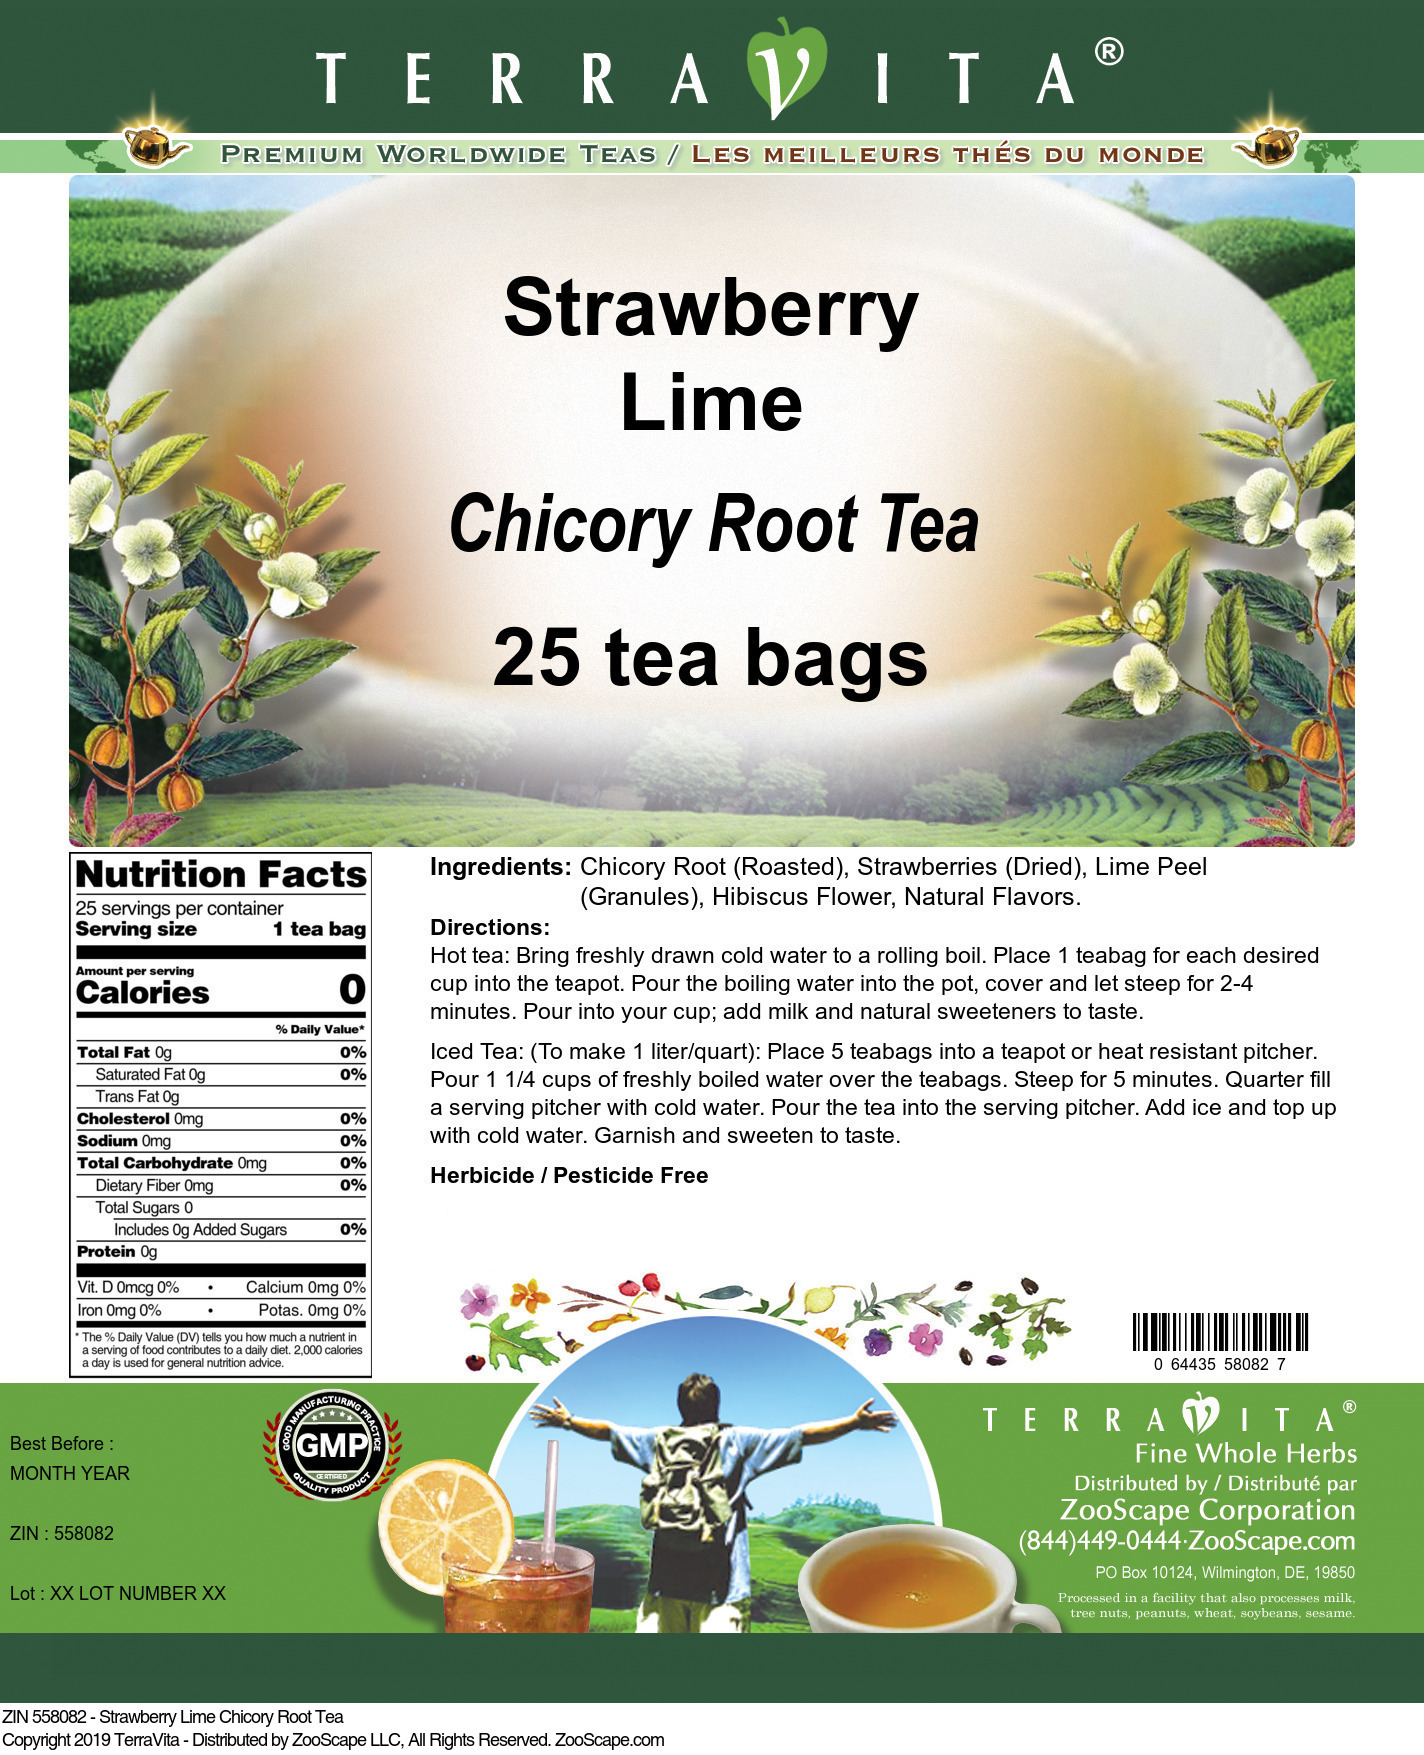 Strawberry Lime Chicory Root